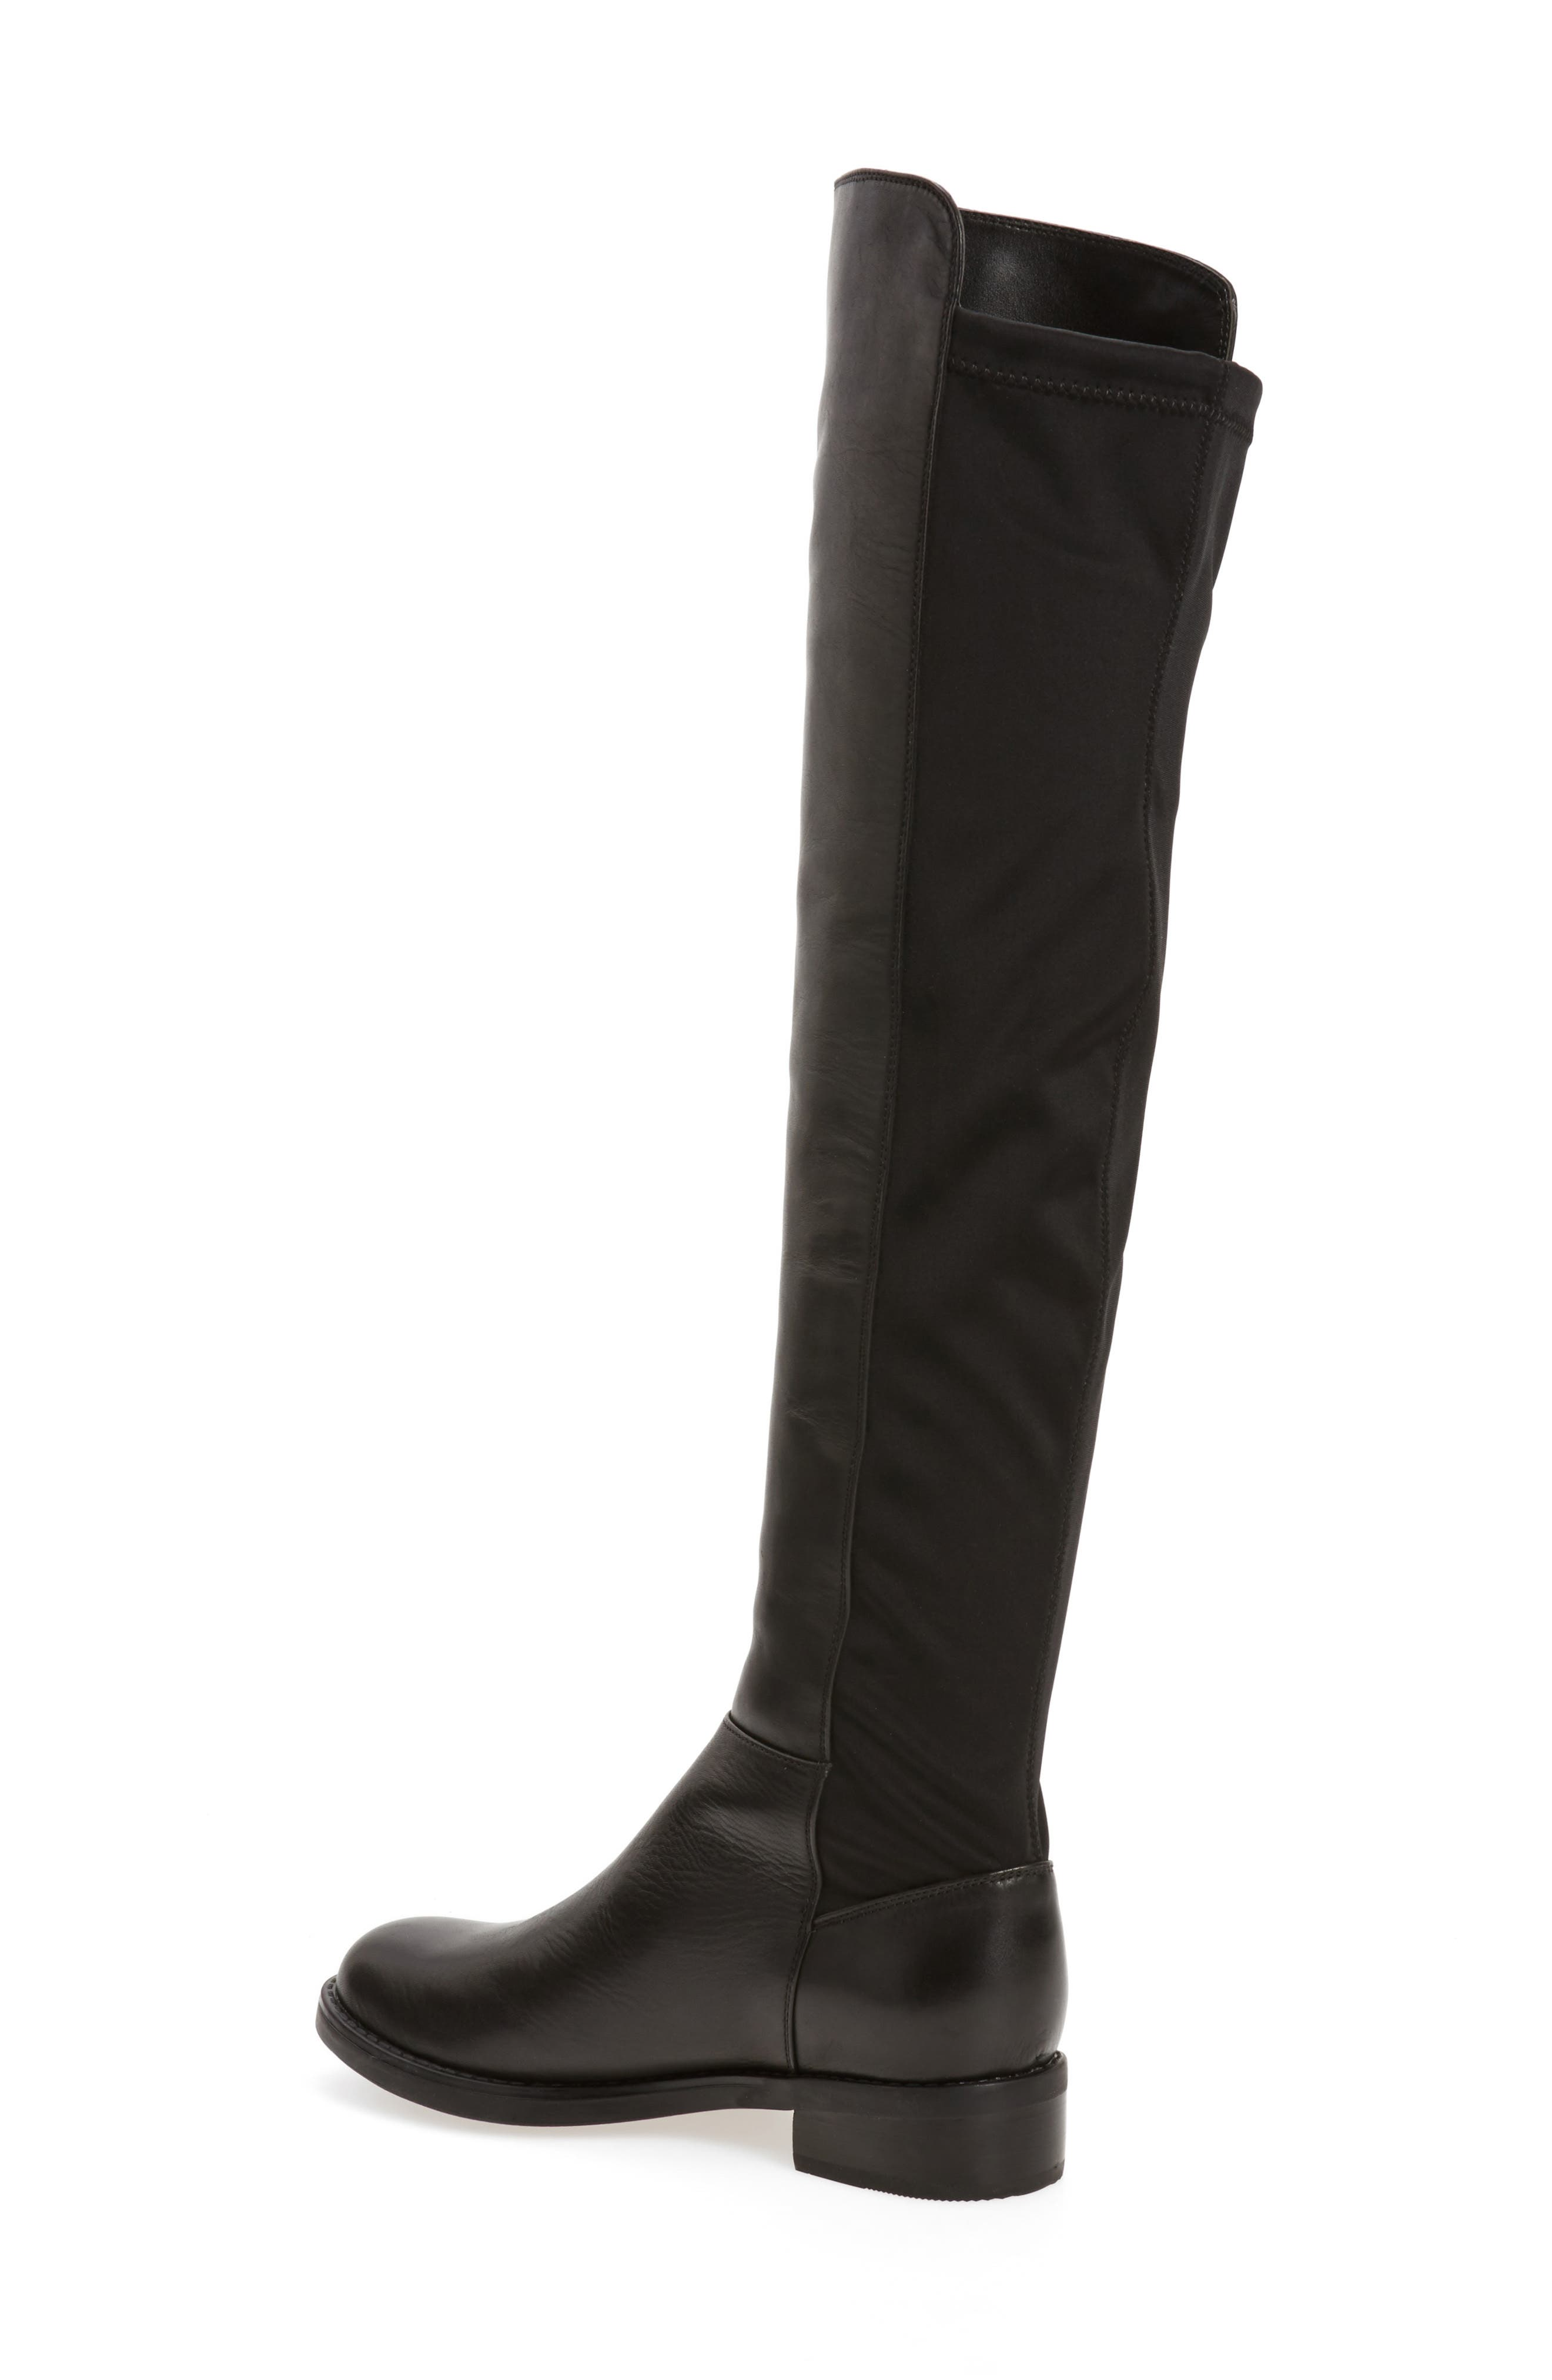 Olivia Knee High Boot,                             Alternate thumbnail 2, color,                             001